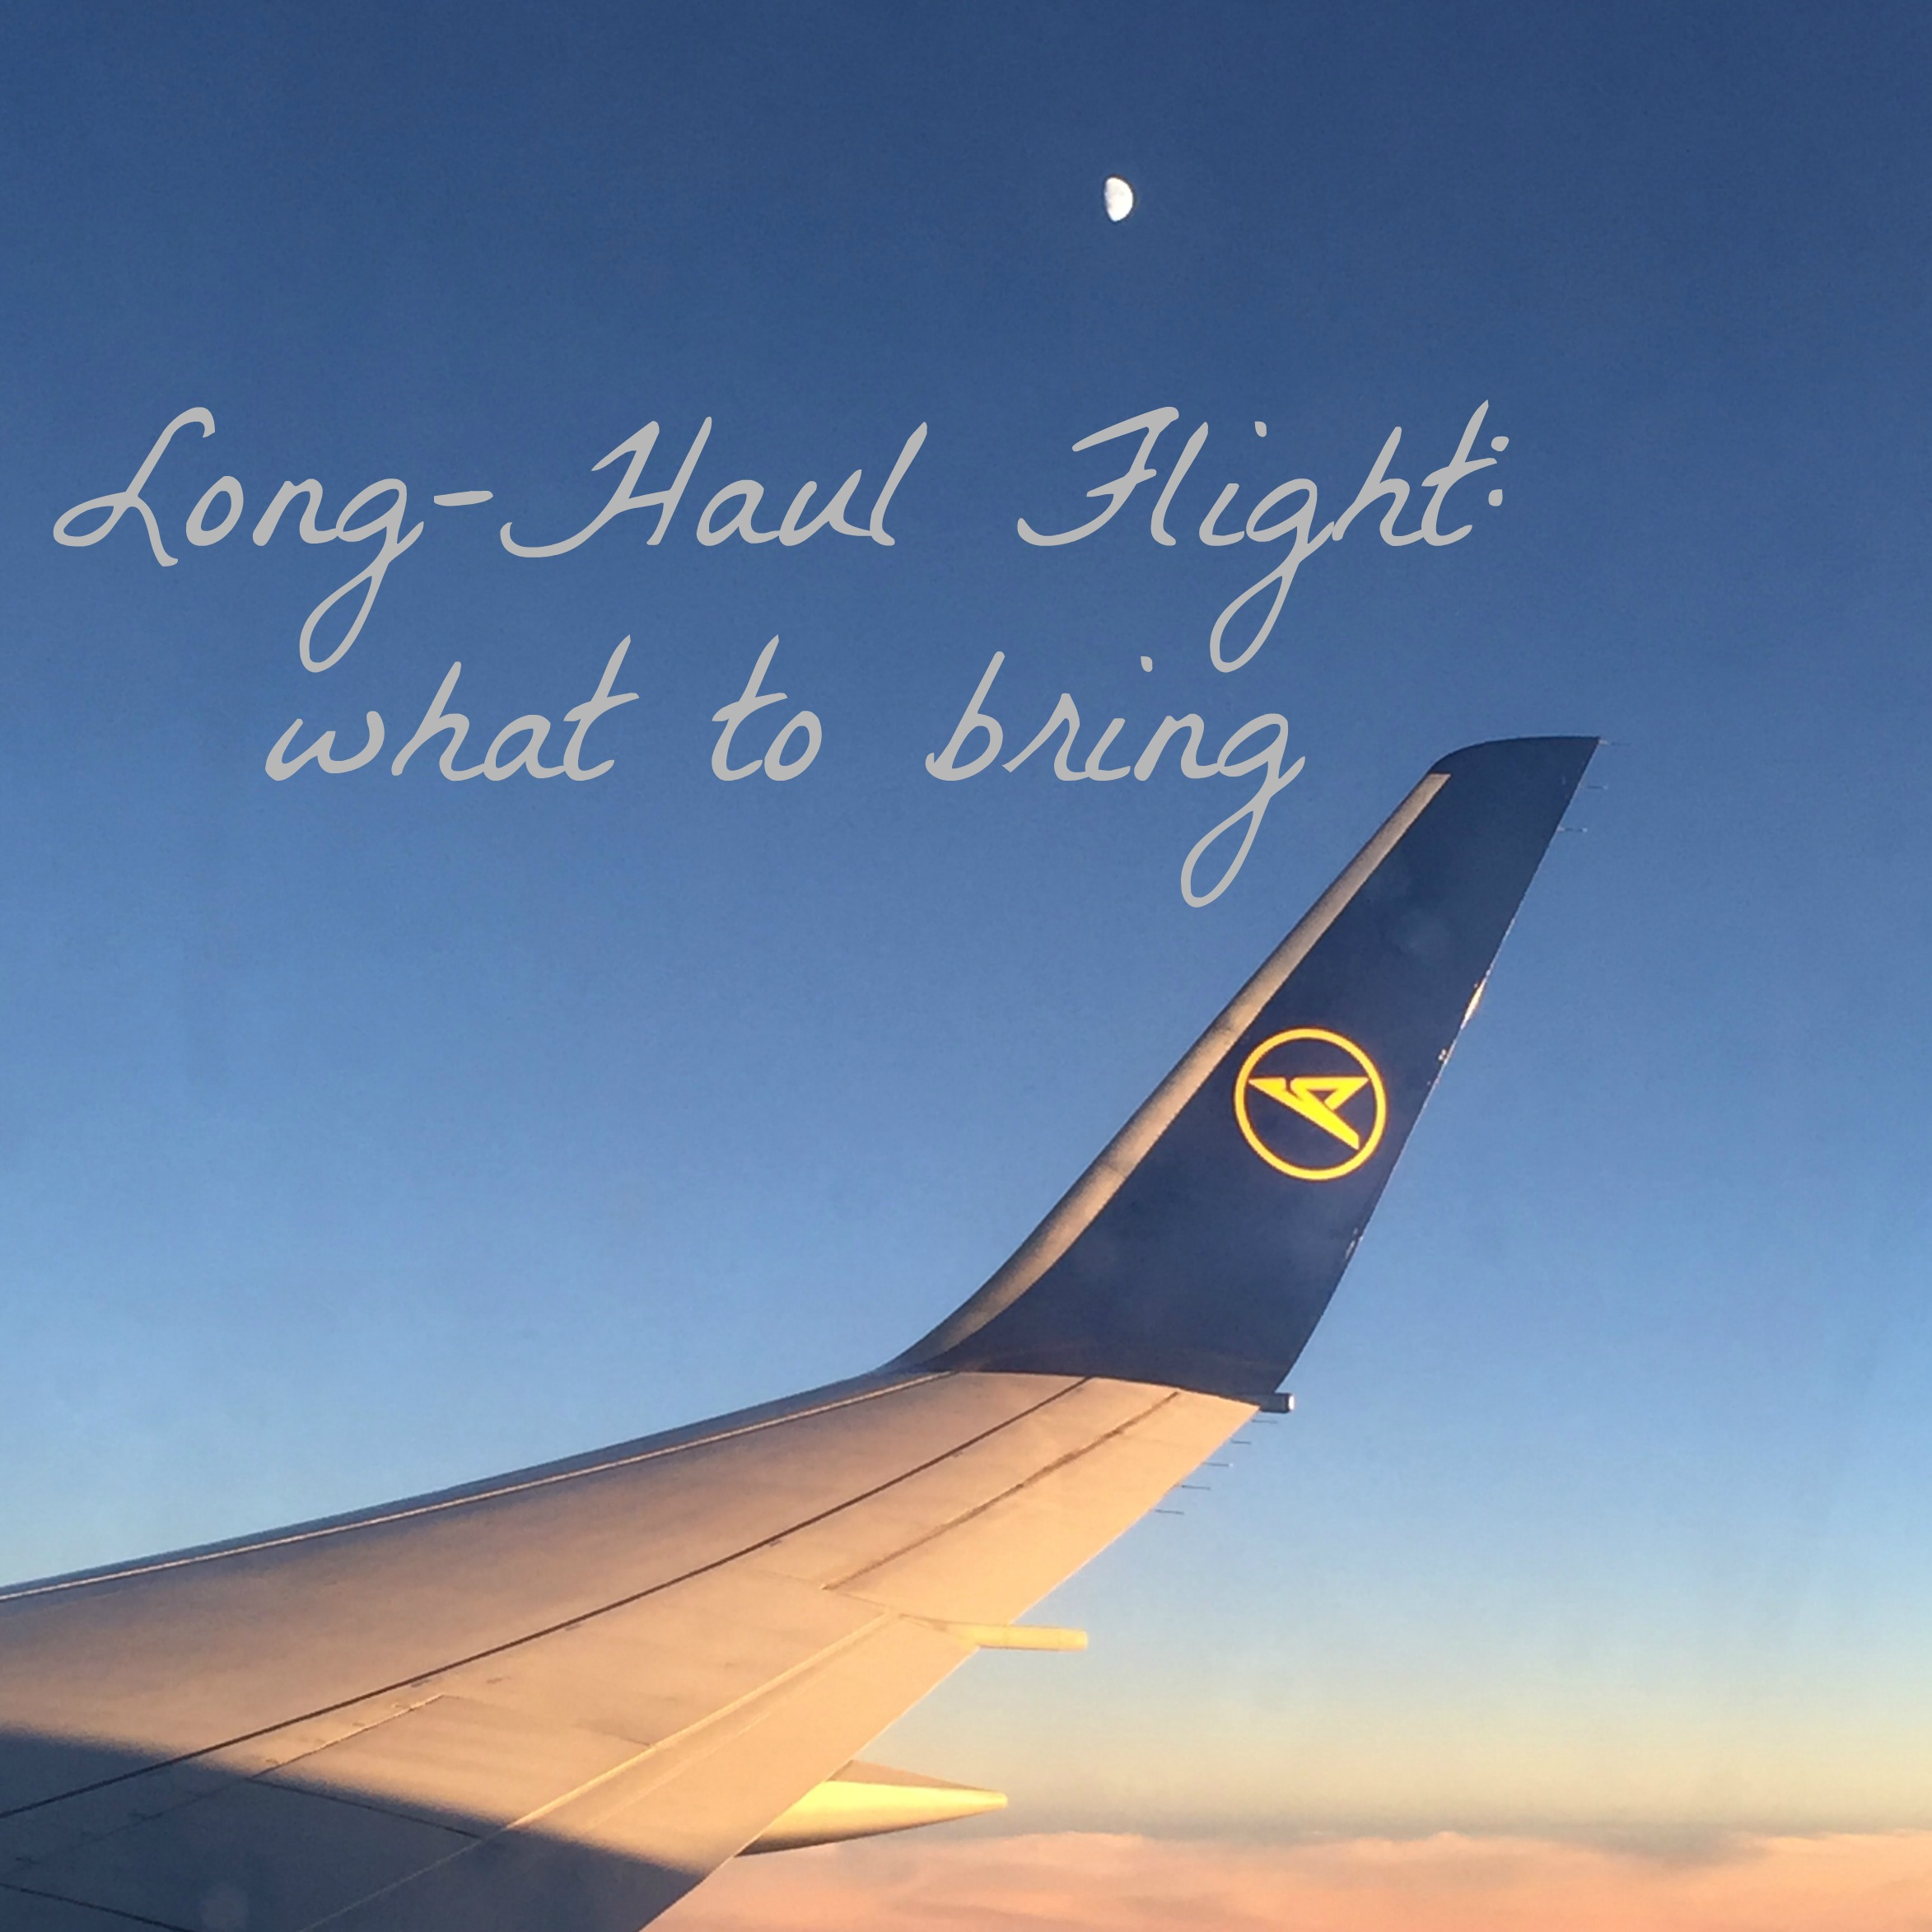 Long-Haul Flight – What to Bring